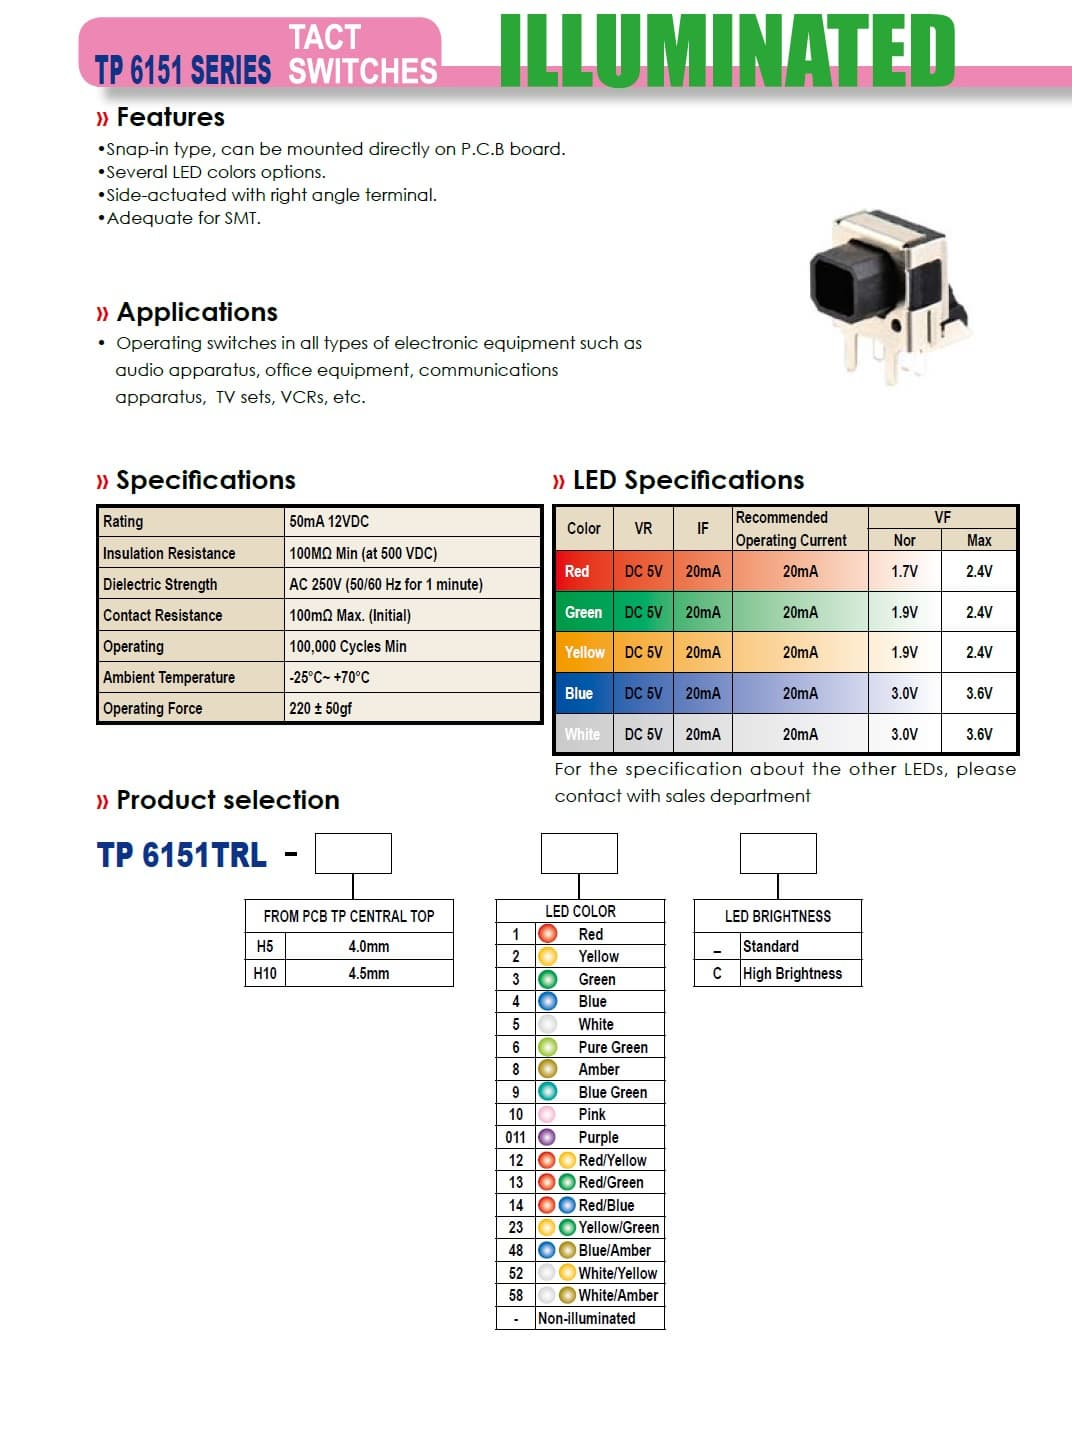 TP6151TRL SERIES ILLUMINATED TACT SWITCHES from HIGHLY ELECTRIC CO ...